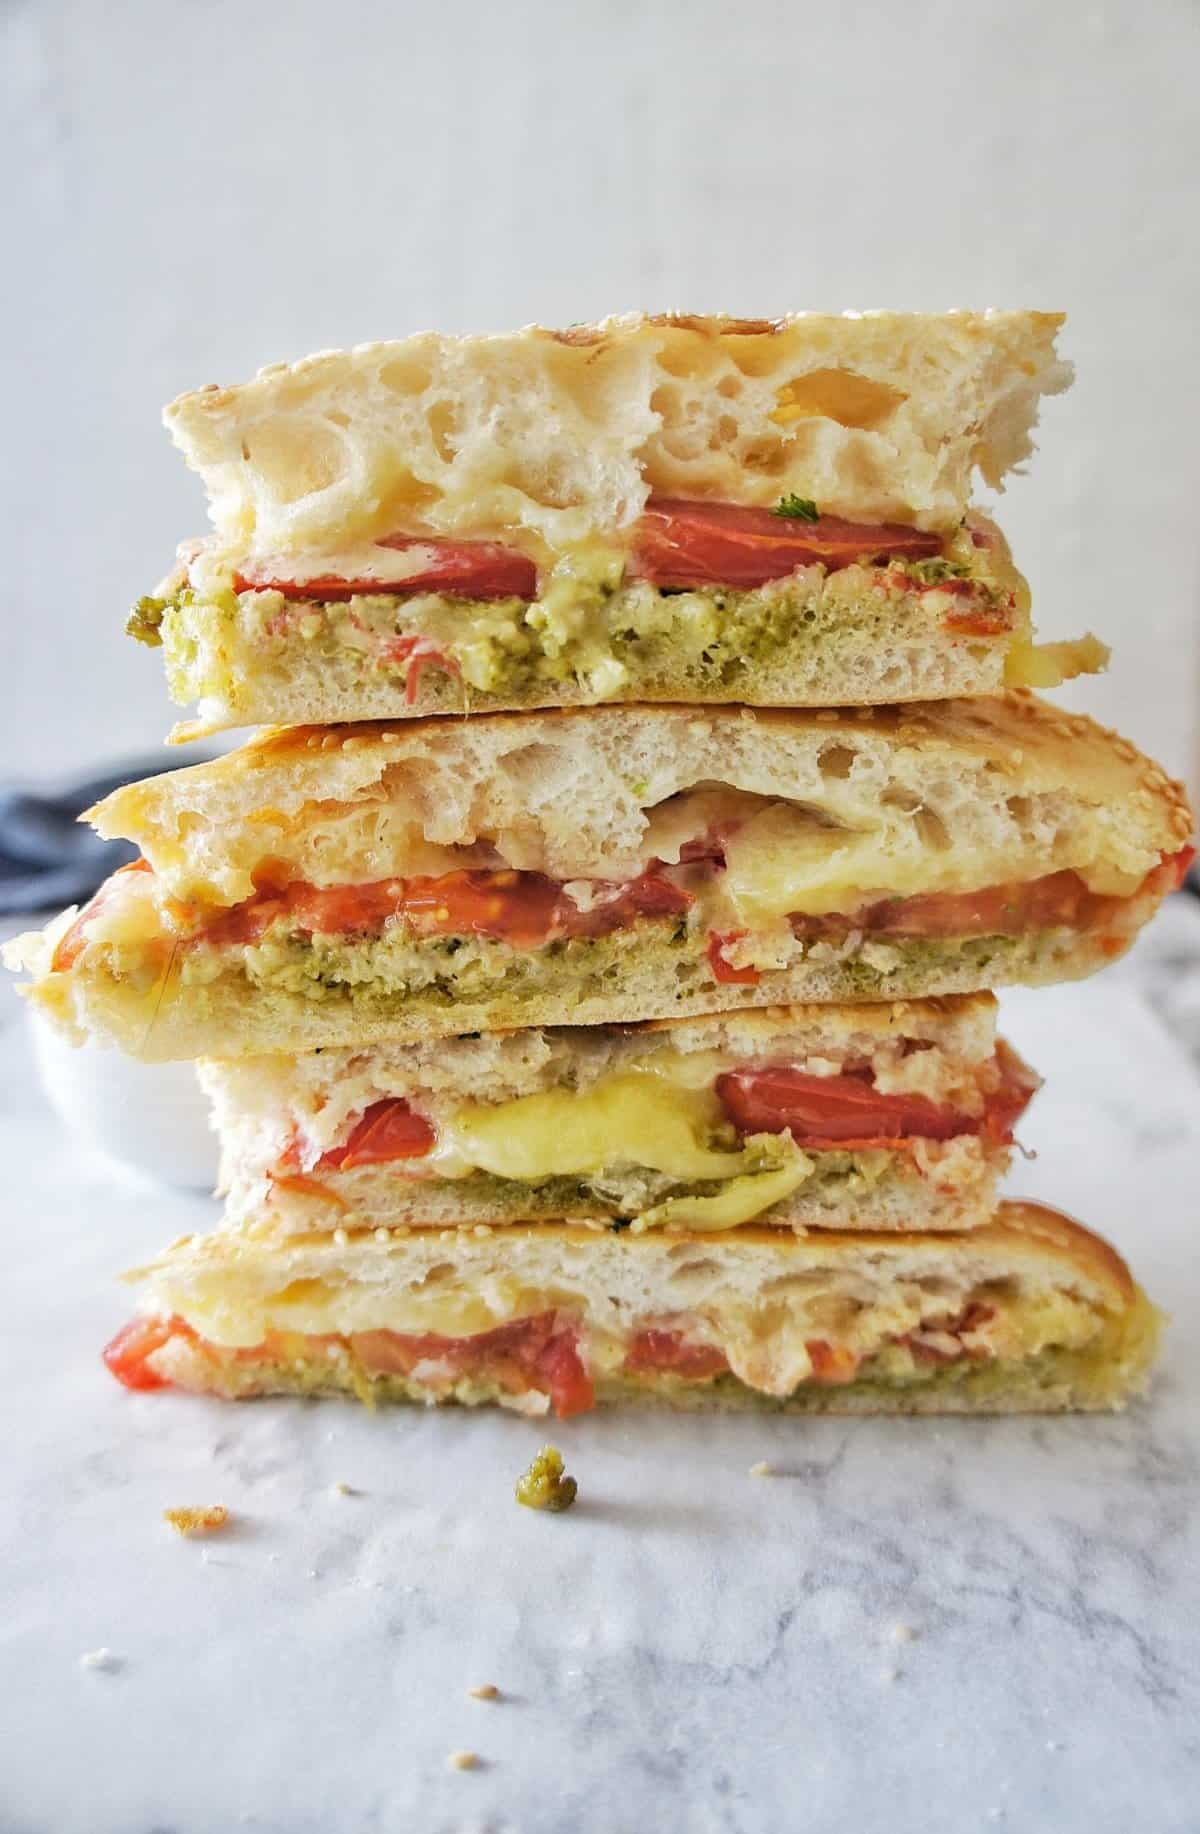 Pesto Grilled Cheese Sandwich halves stacked high with white background